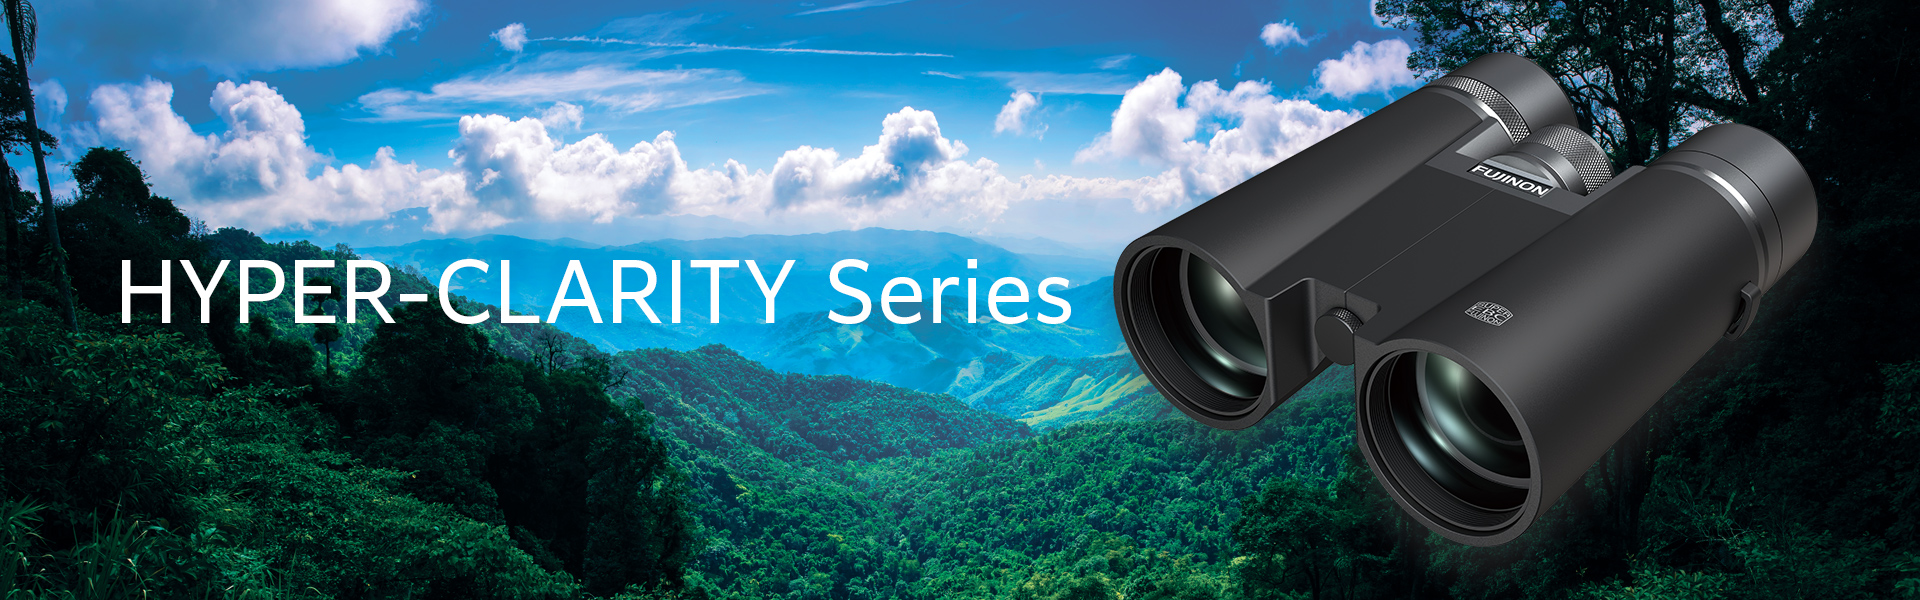 [photo] Hyper Clarity binoculars in front of blue sky and green hills background